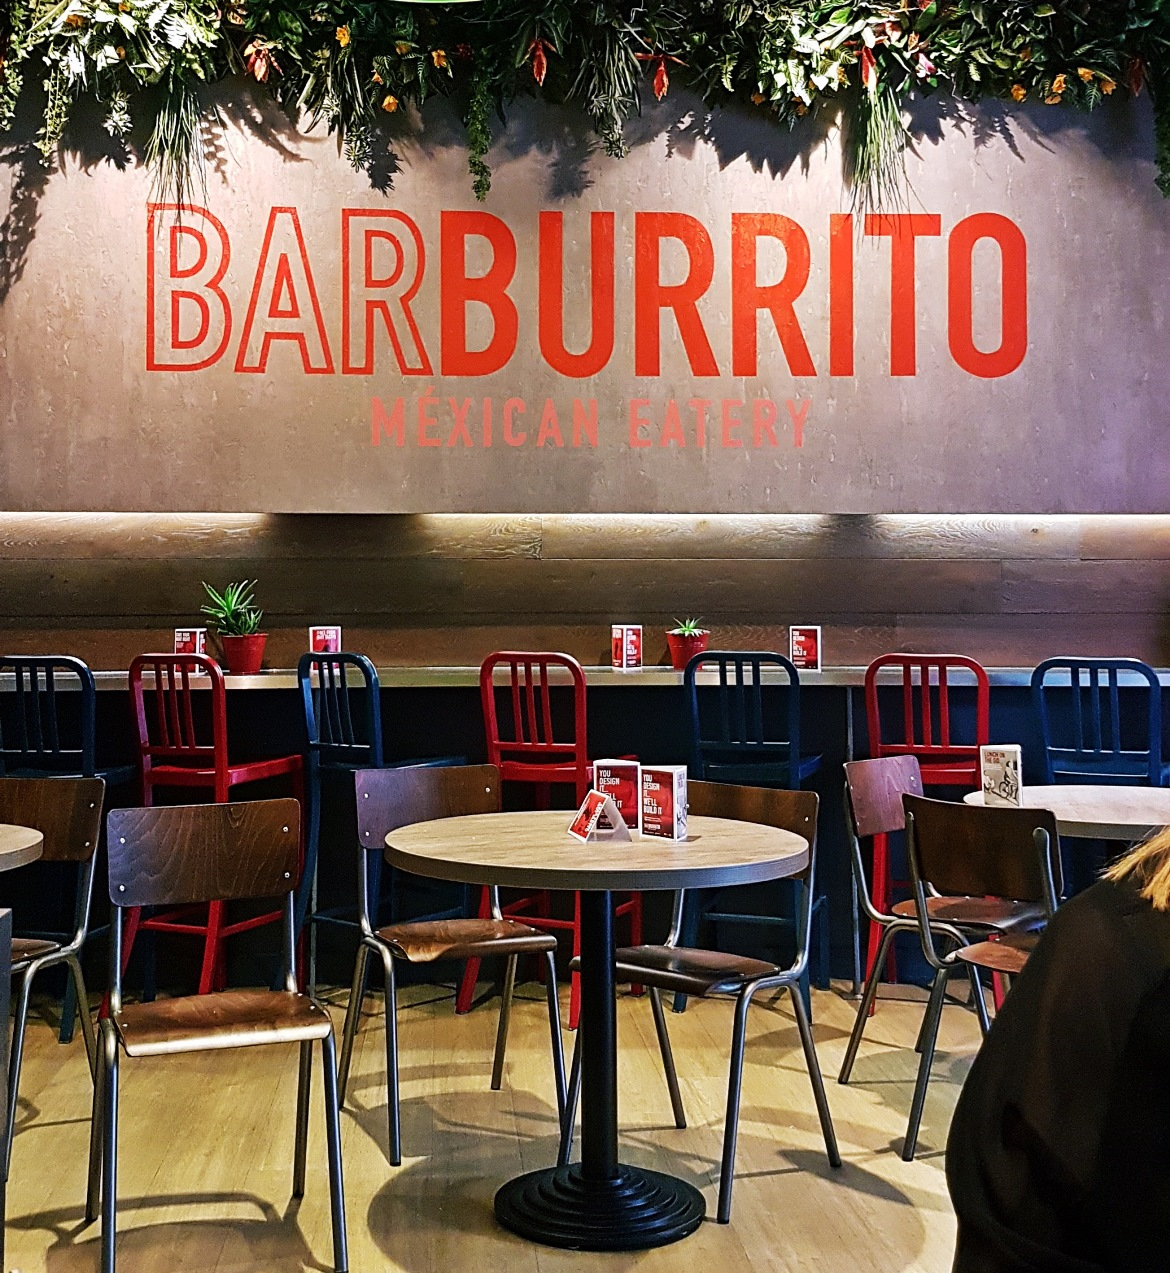 Interior of Barburrito - Burrito Masterclass with Barburrito, review by BeckyBecky Blogs